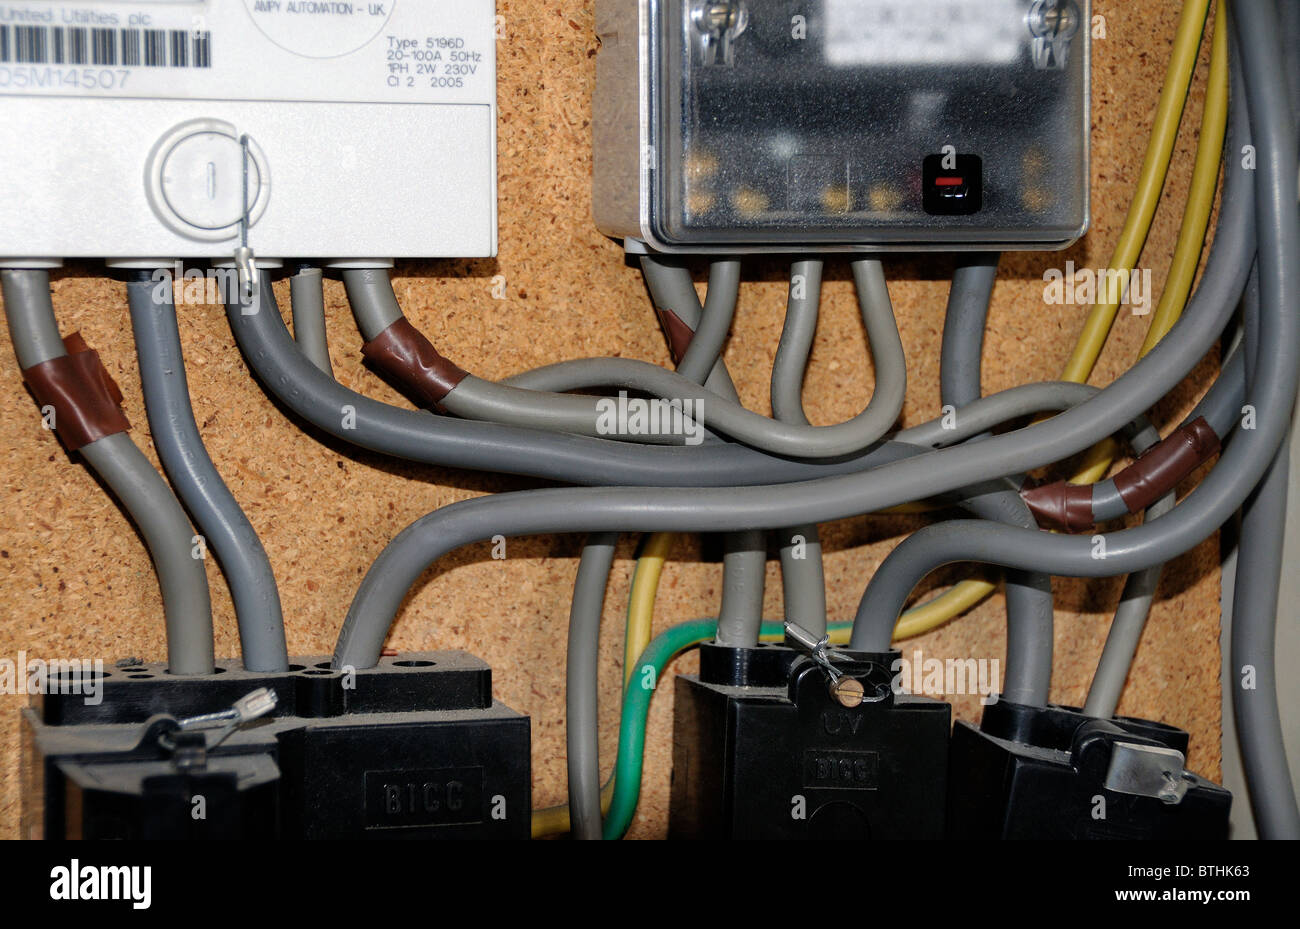 Increasing Electricity Meter : Electric meter box stock photos electric meter box stock images